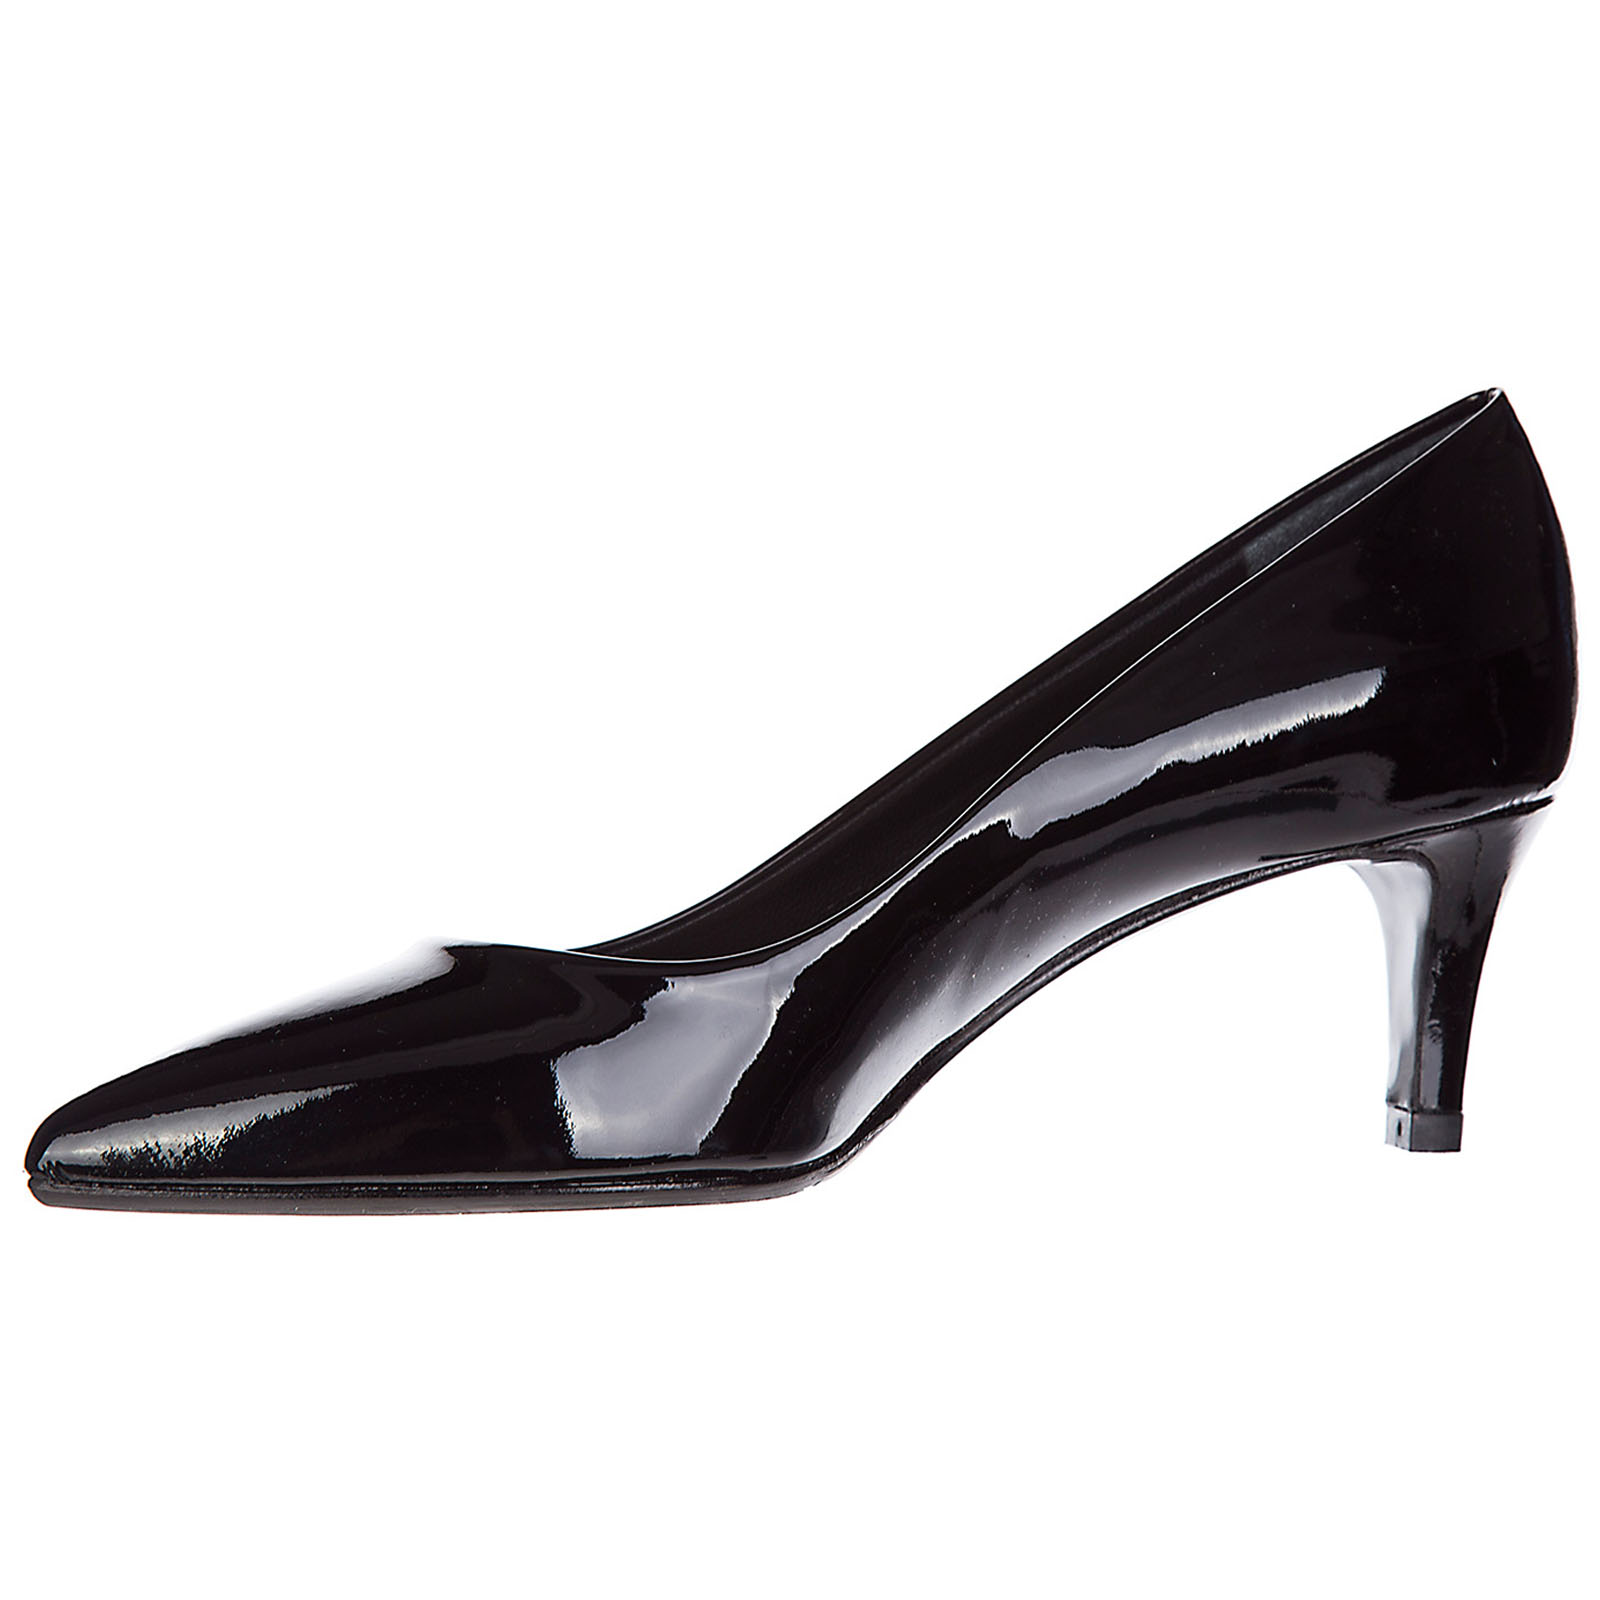 Women's leather pumps court shoes high heel